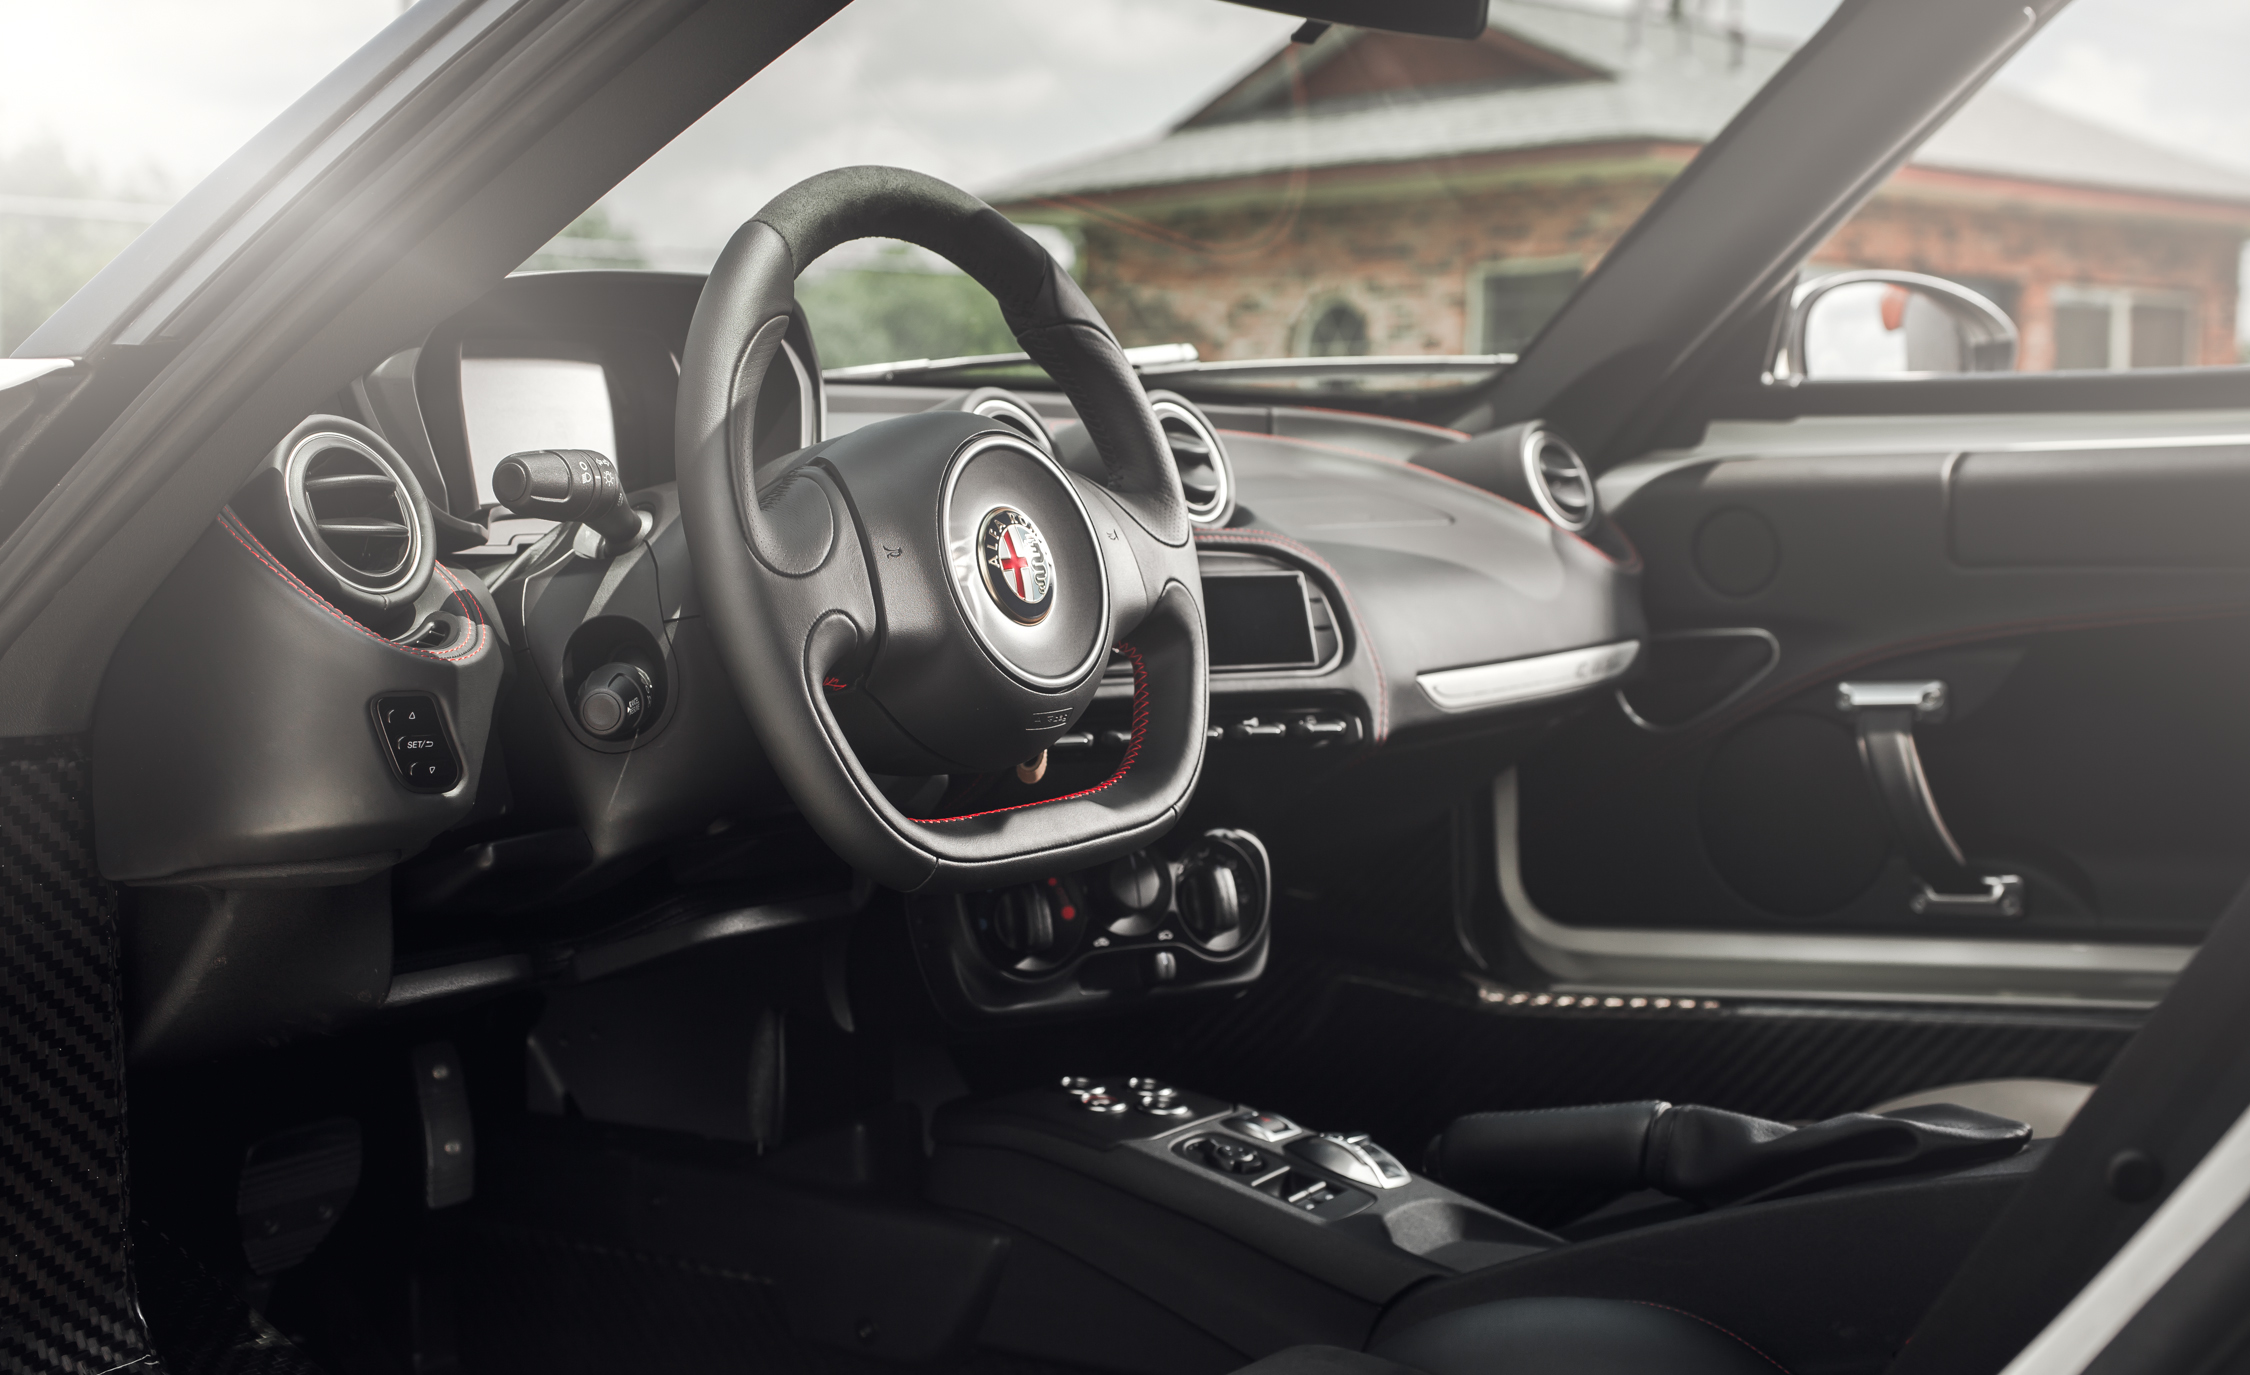 2015 Alfa Romeo 4C Interior (Photo 21 of 25)